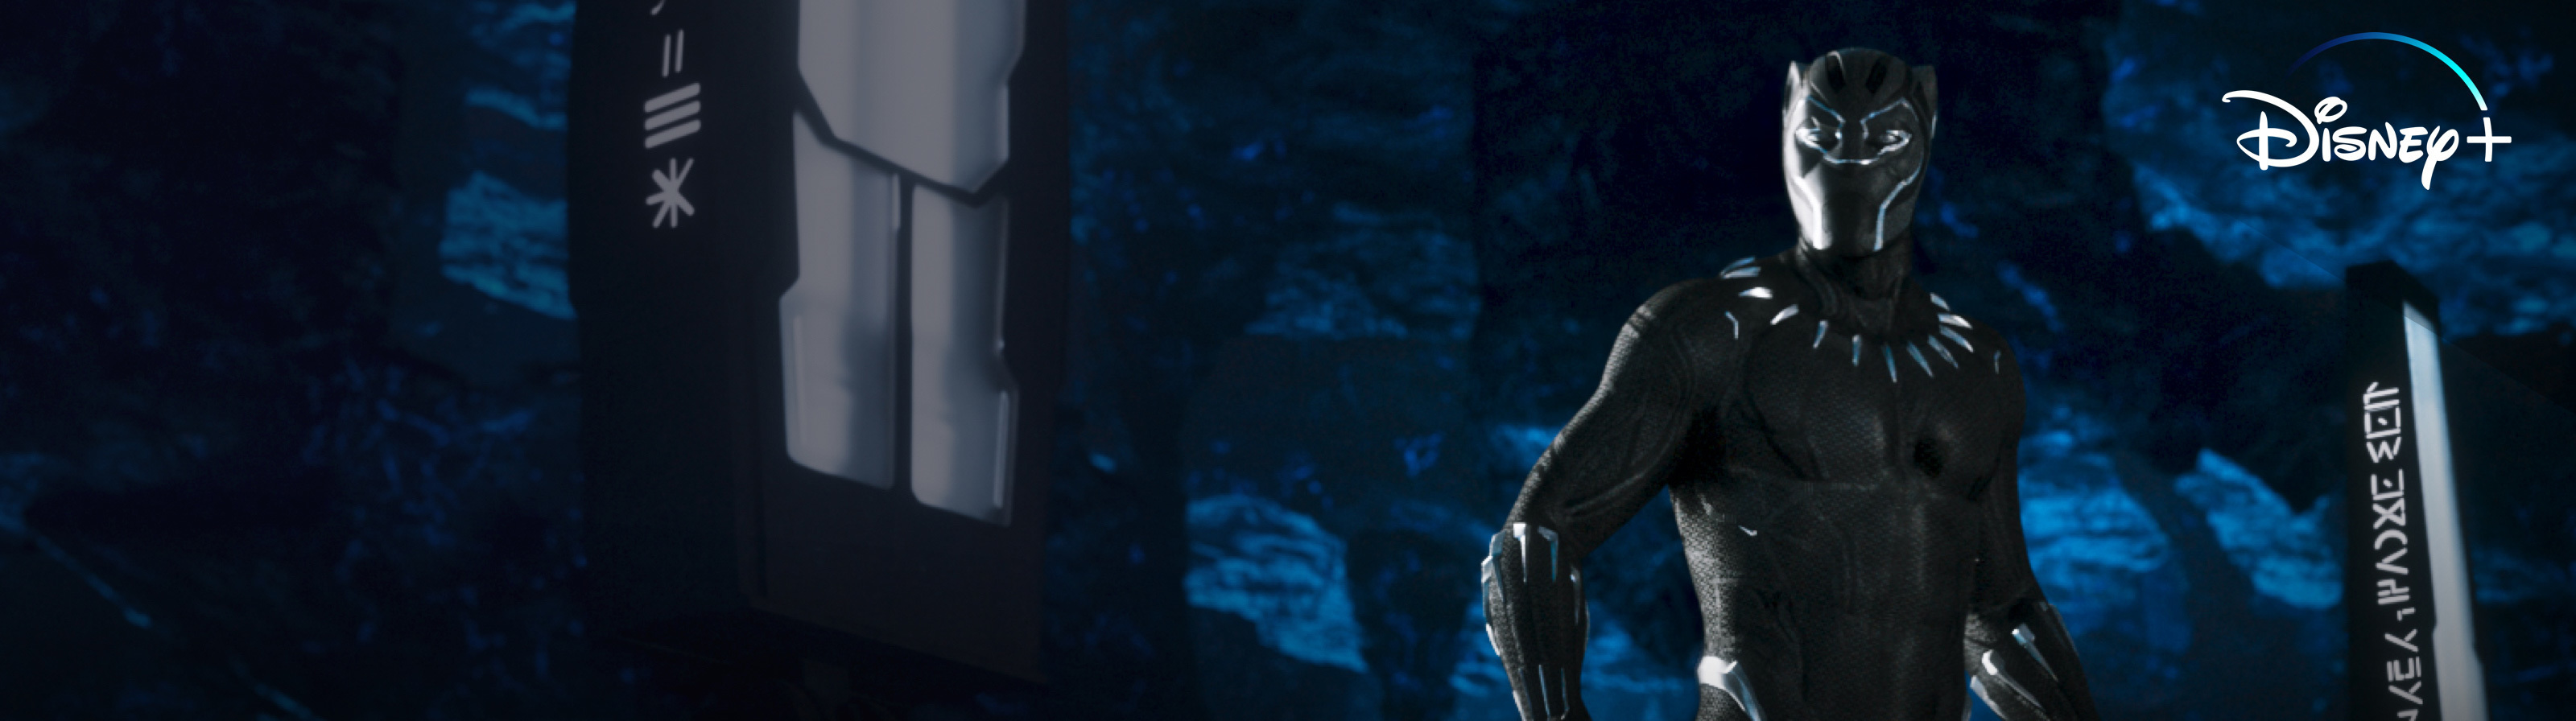 Black Panther est maintenant disponible sur Disney+